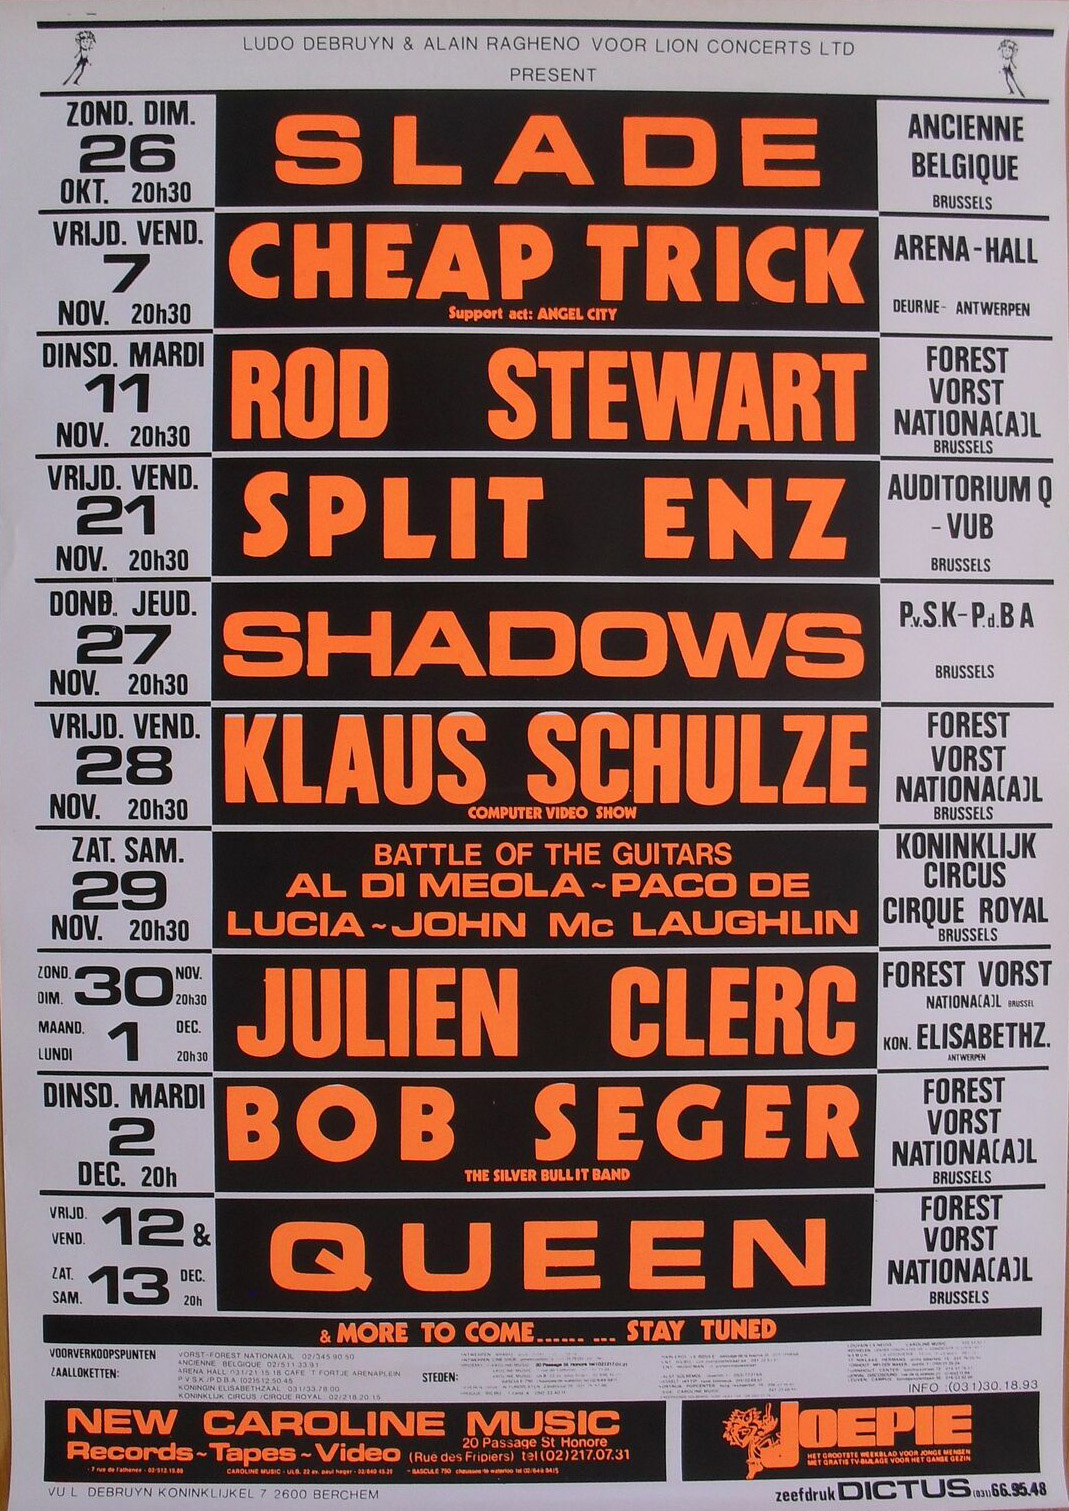 Queen in Brussels on 12.-13.12.1980